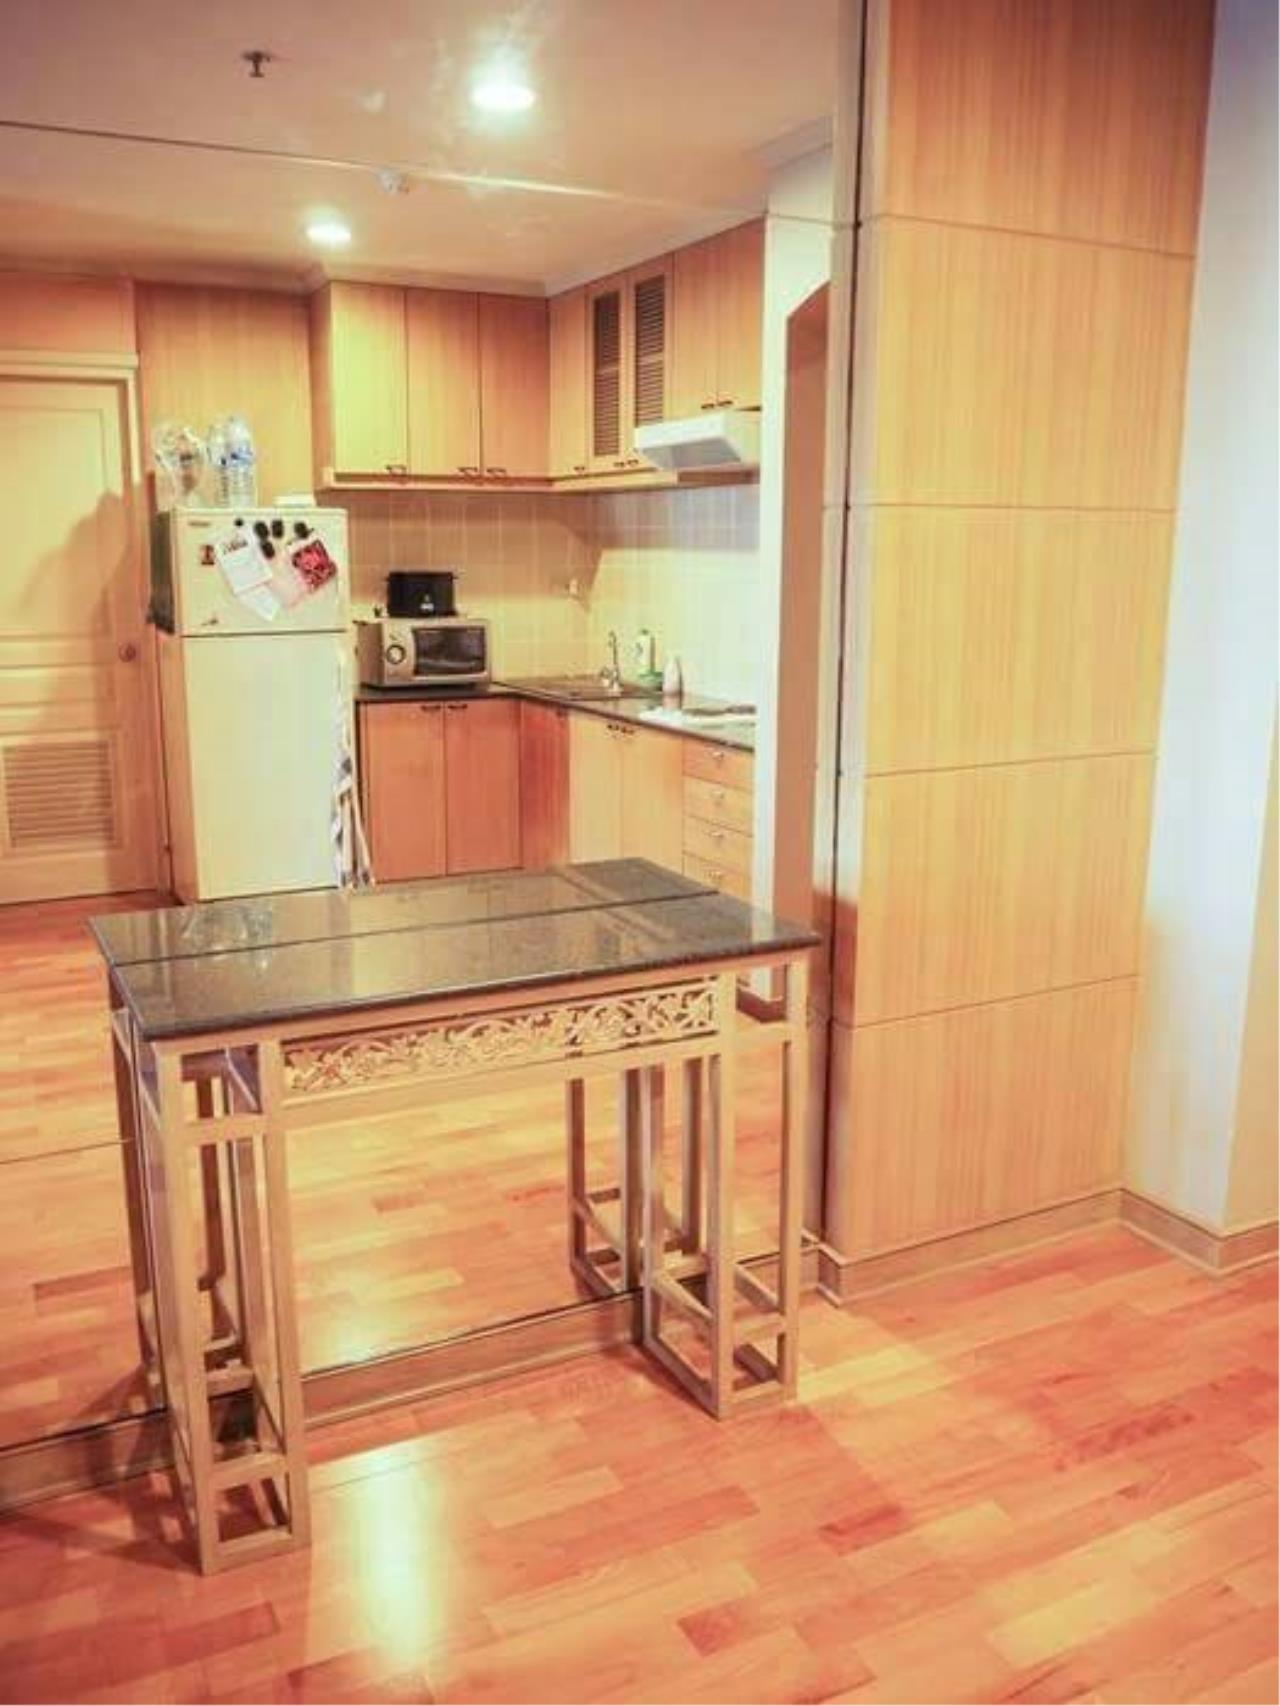 RE/MAX Properties Agency's Cheapest 2 bedroom for renting only 23,000 in Sukhumvit 30/1 5